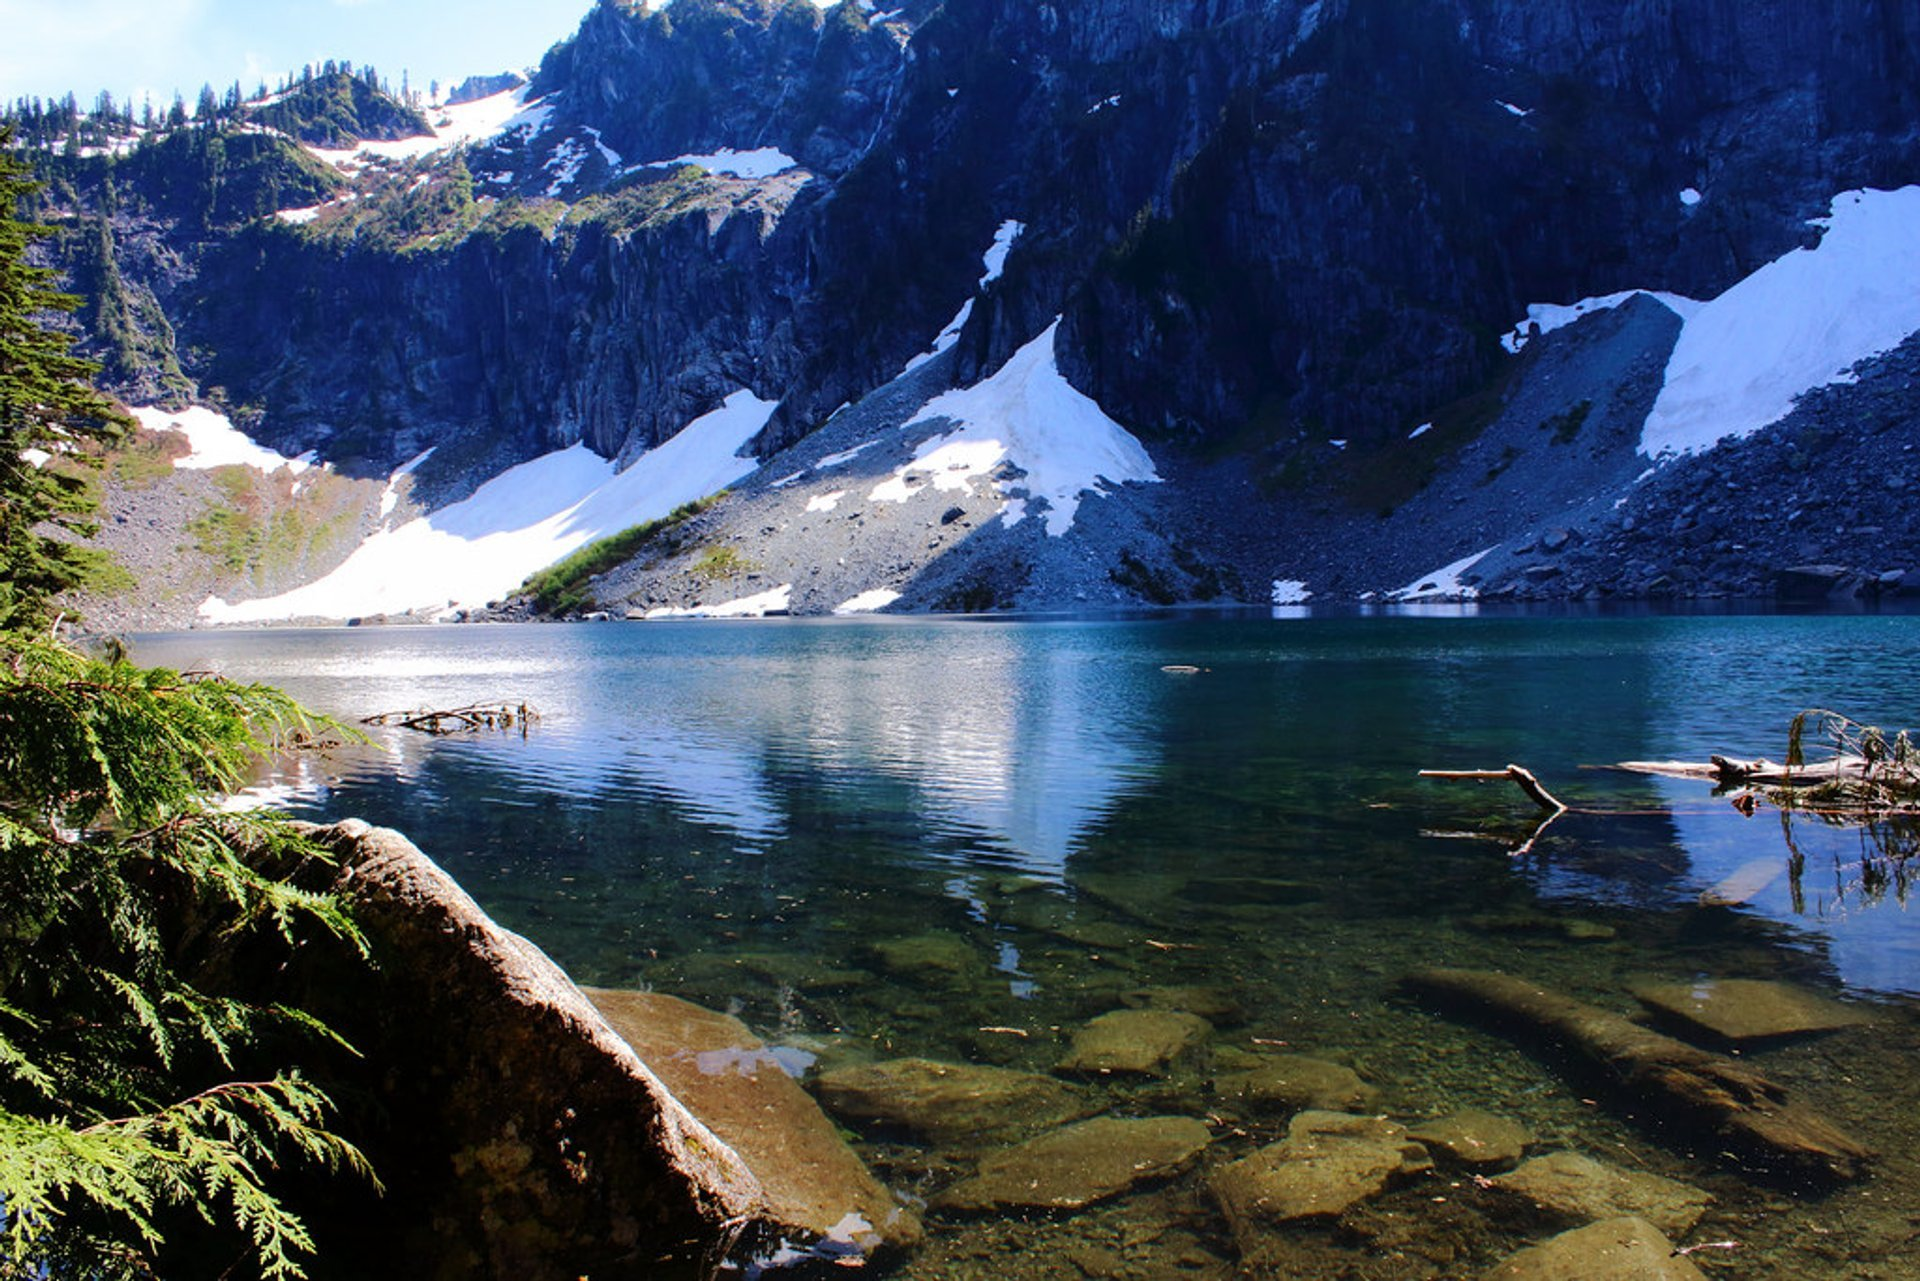 Best time for Lake Serene & Bridal Veil Falls 2020